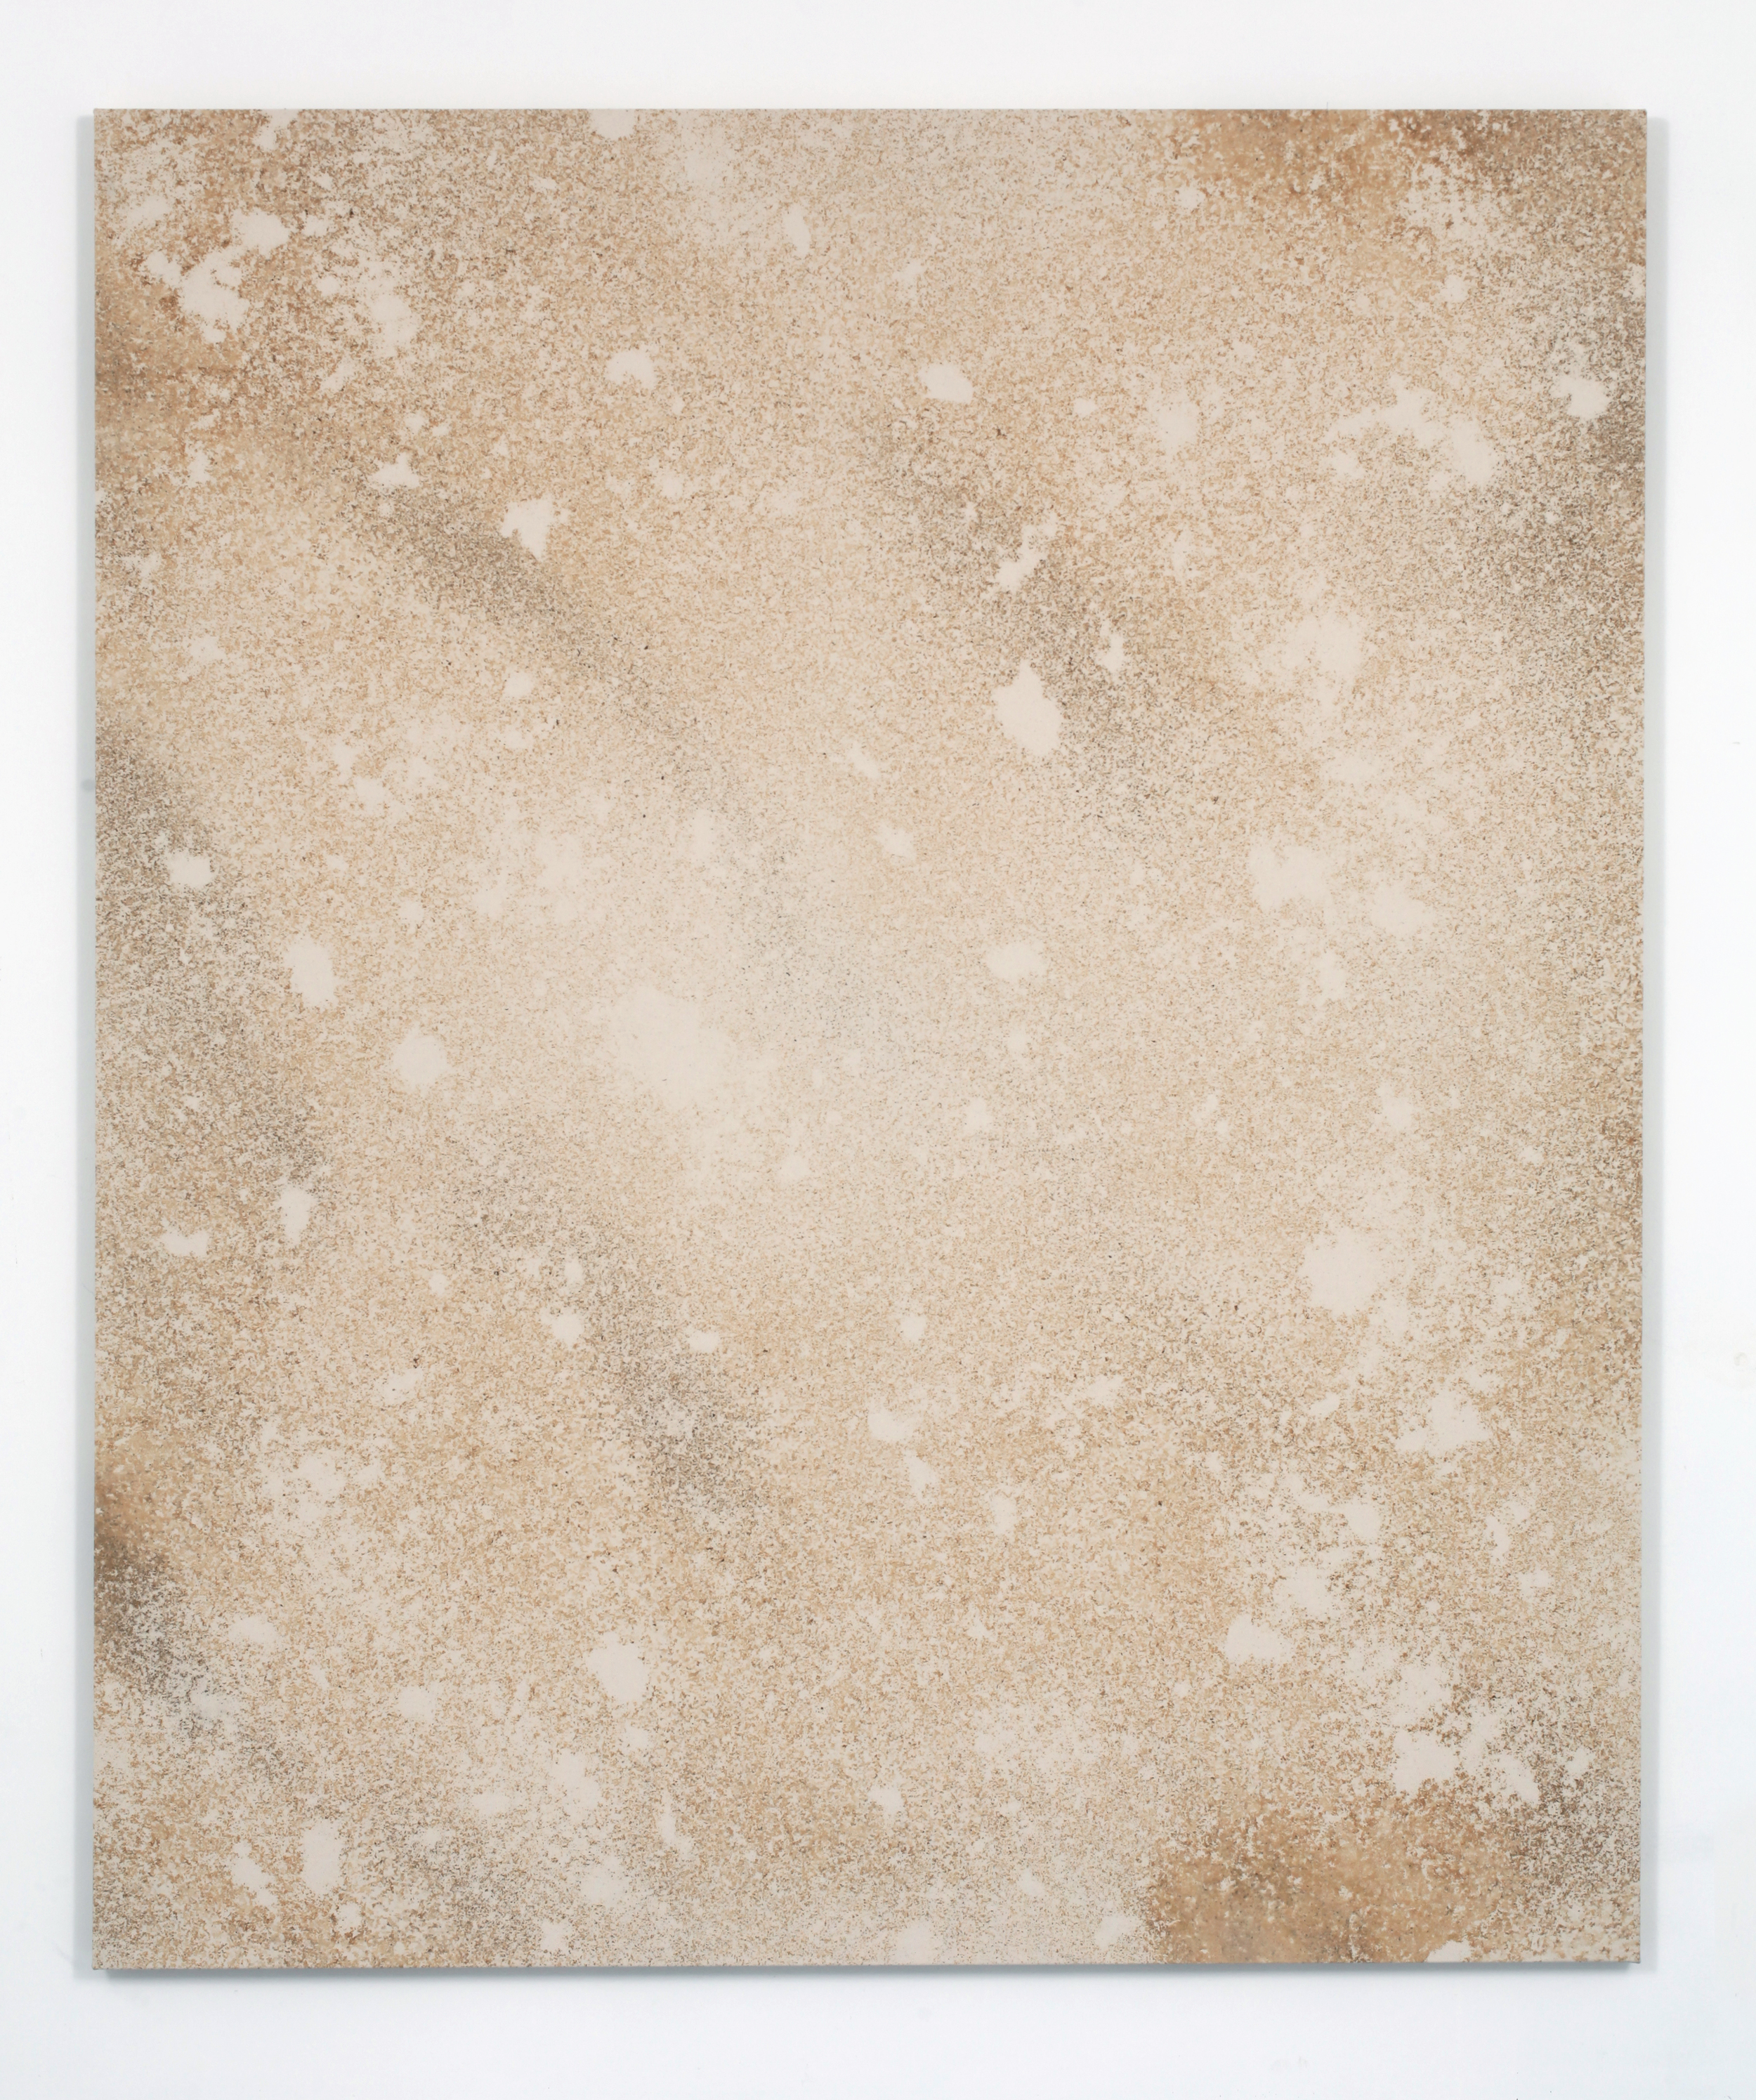 Untitled 6 (Stain), 2014